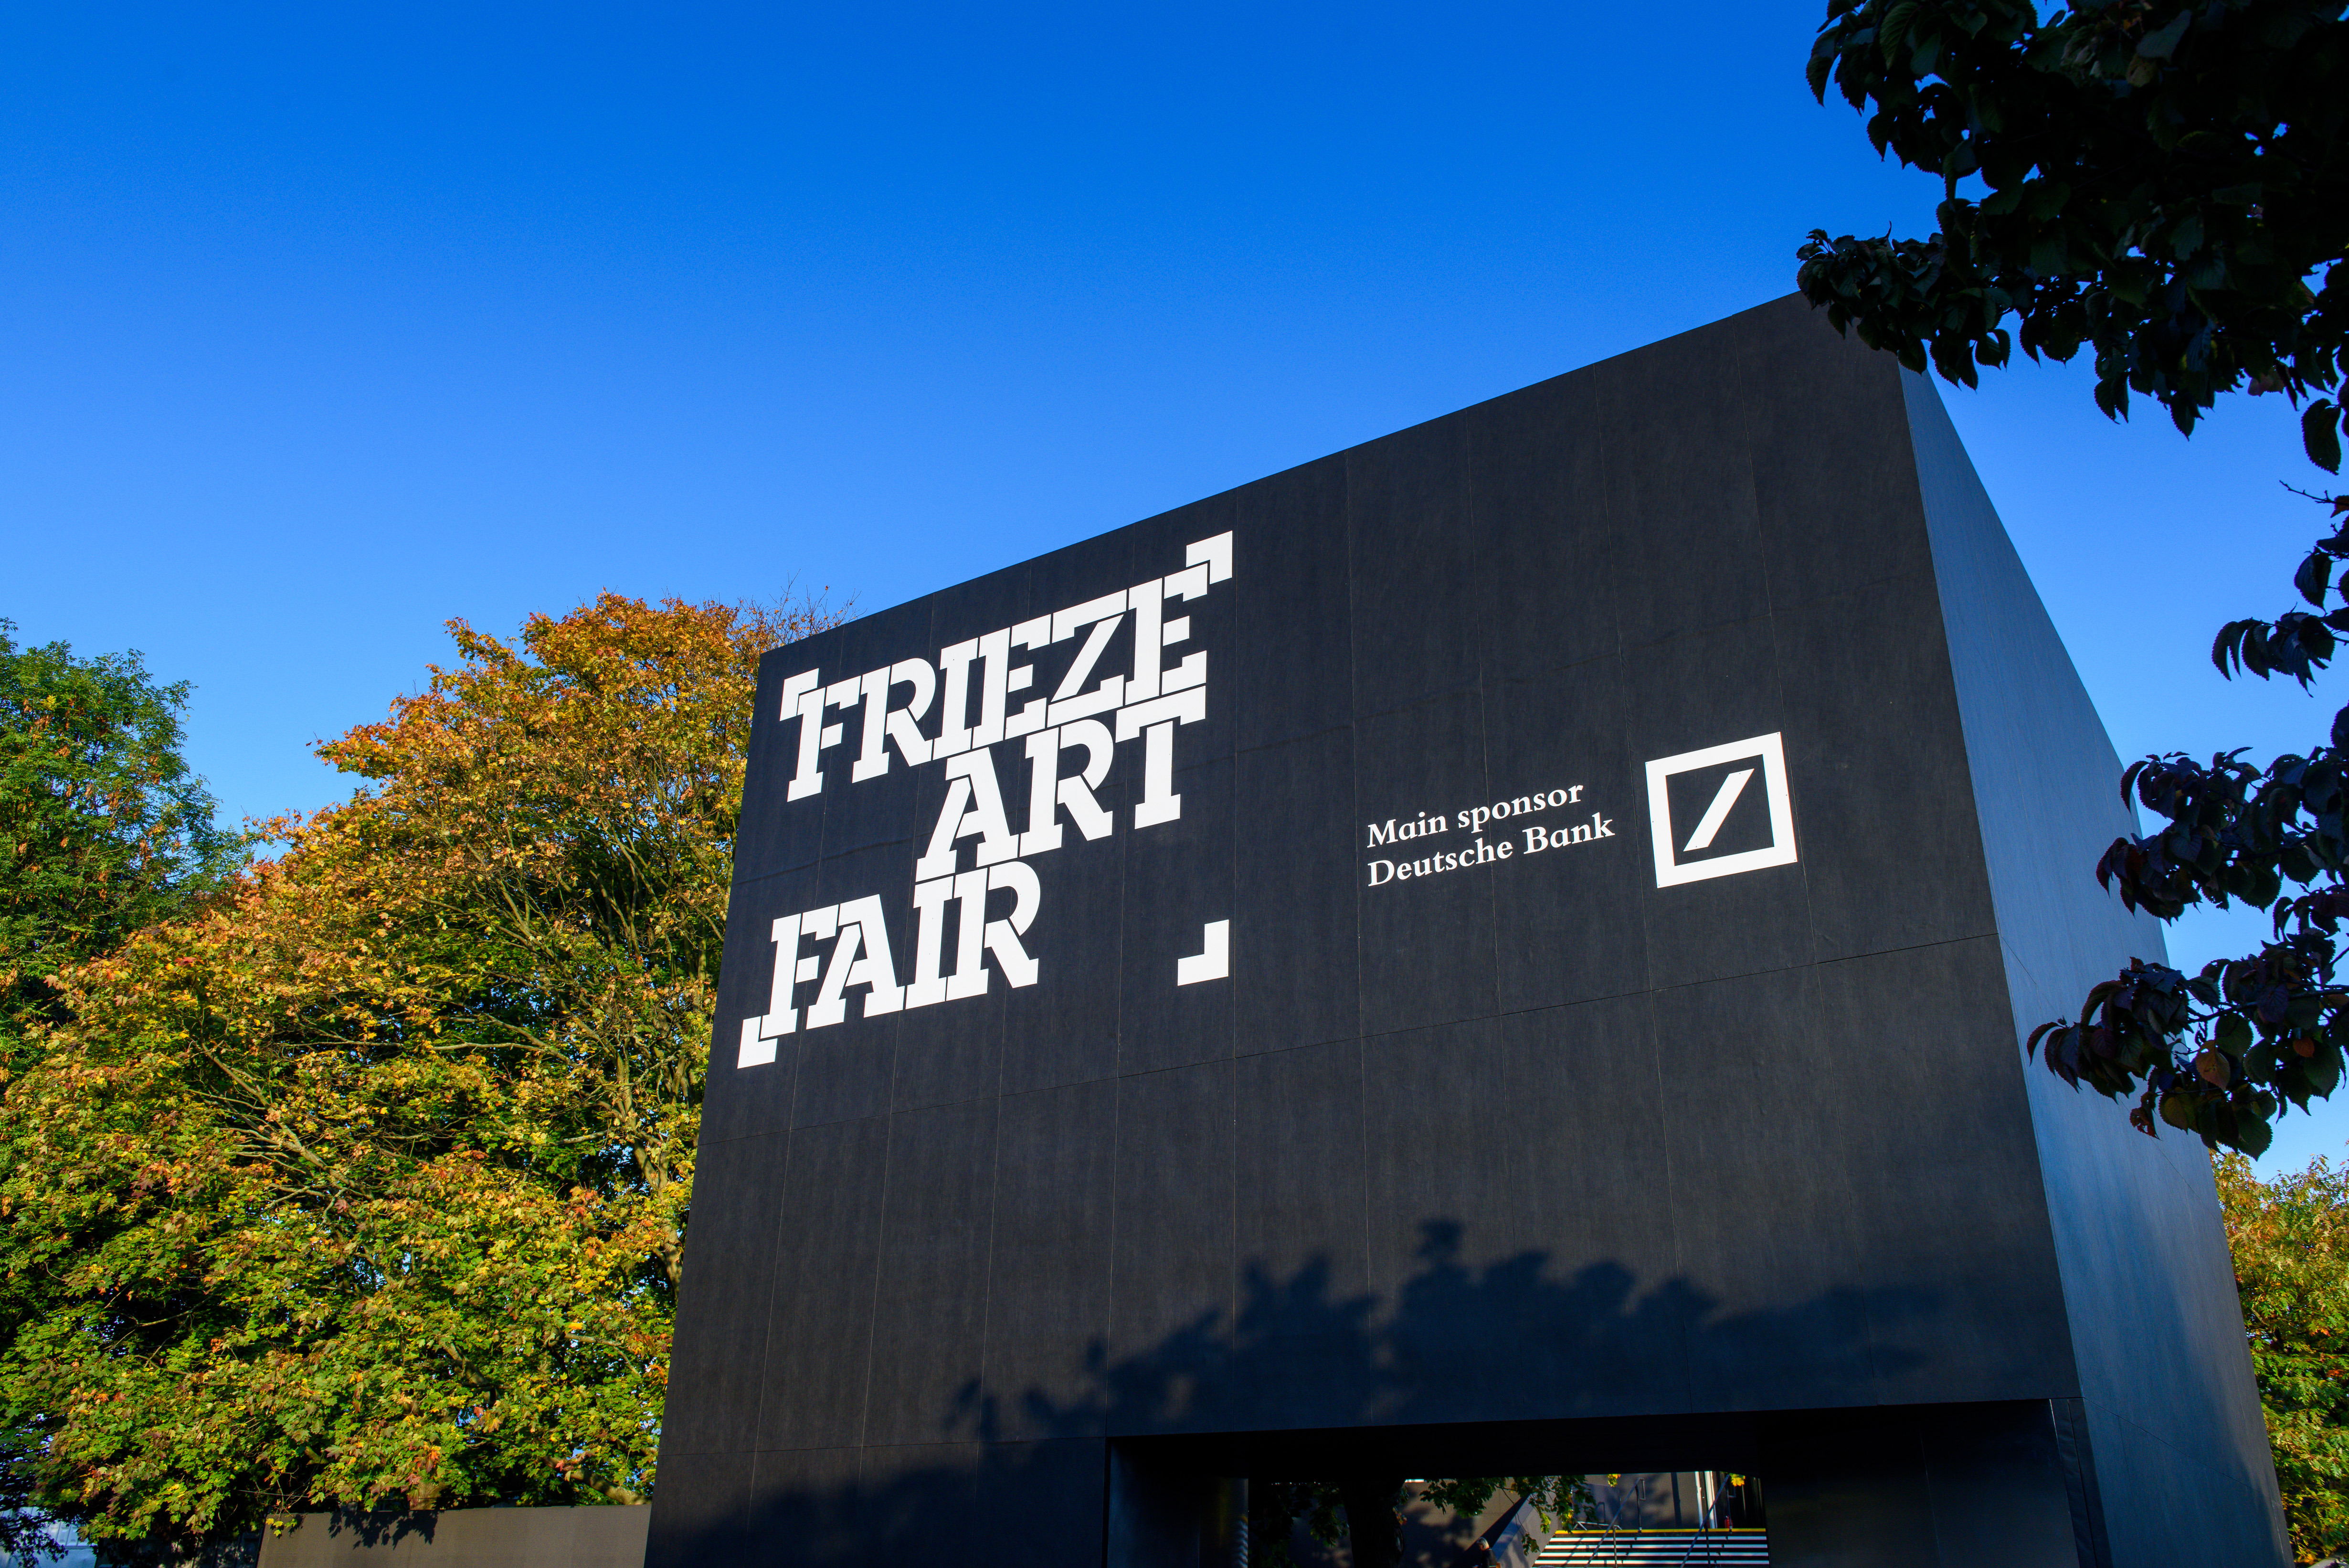 frieze-london-Photograph by Graham Carlow. Courtesy of Graham Carlow/Frieze.